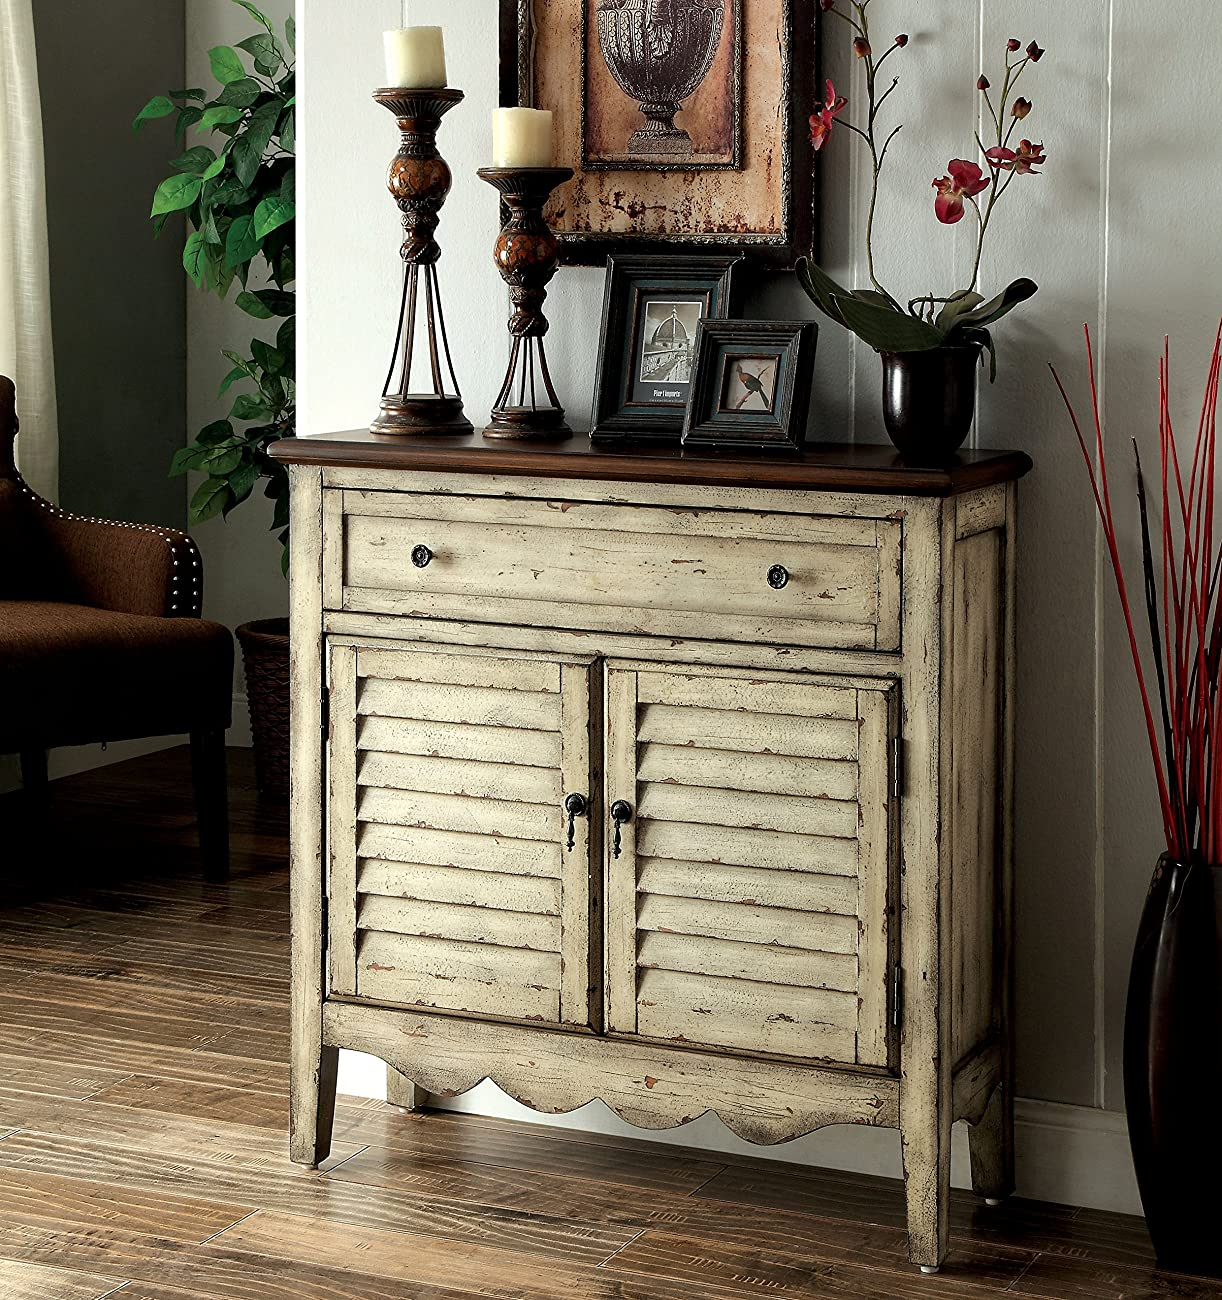 Furniture of America Gladen Vintage Style Storage Cabinet, Antique White/Brown 0